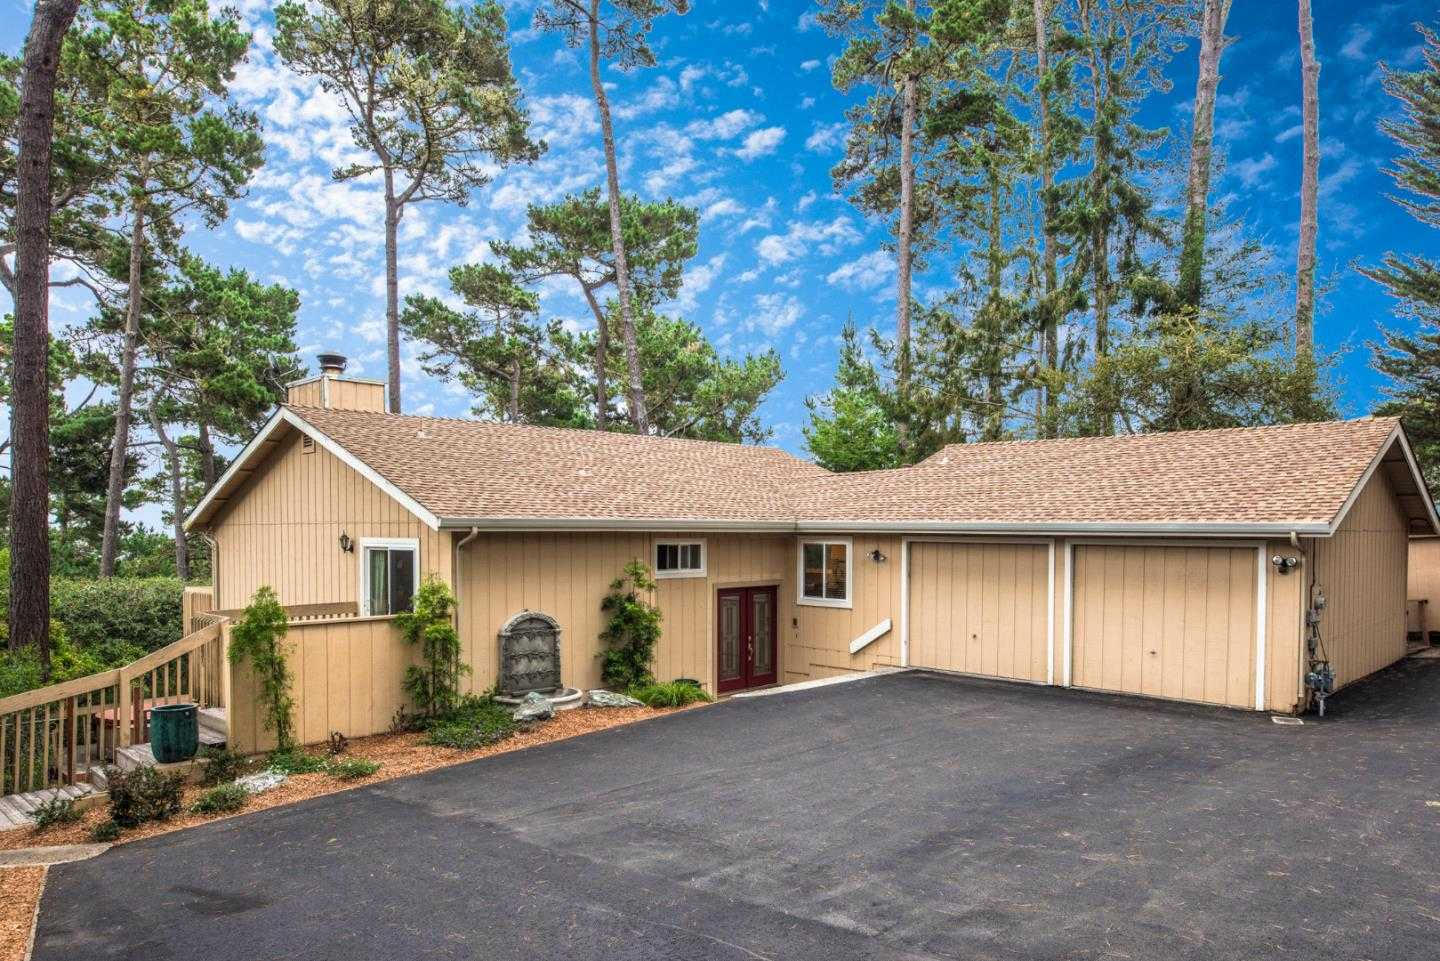 $975,000 - 4Br/3Ba -  for Sale in Pebble Beach